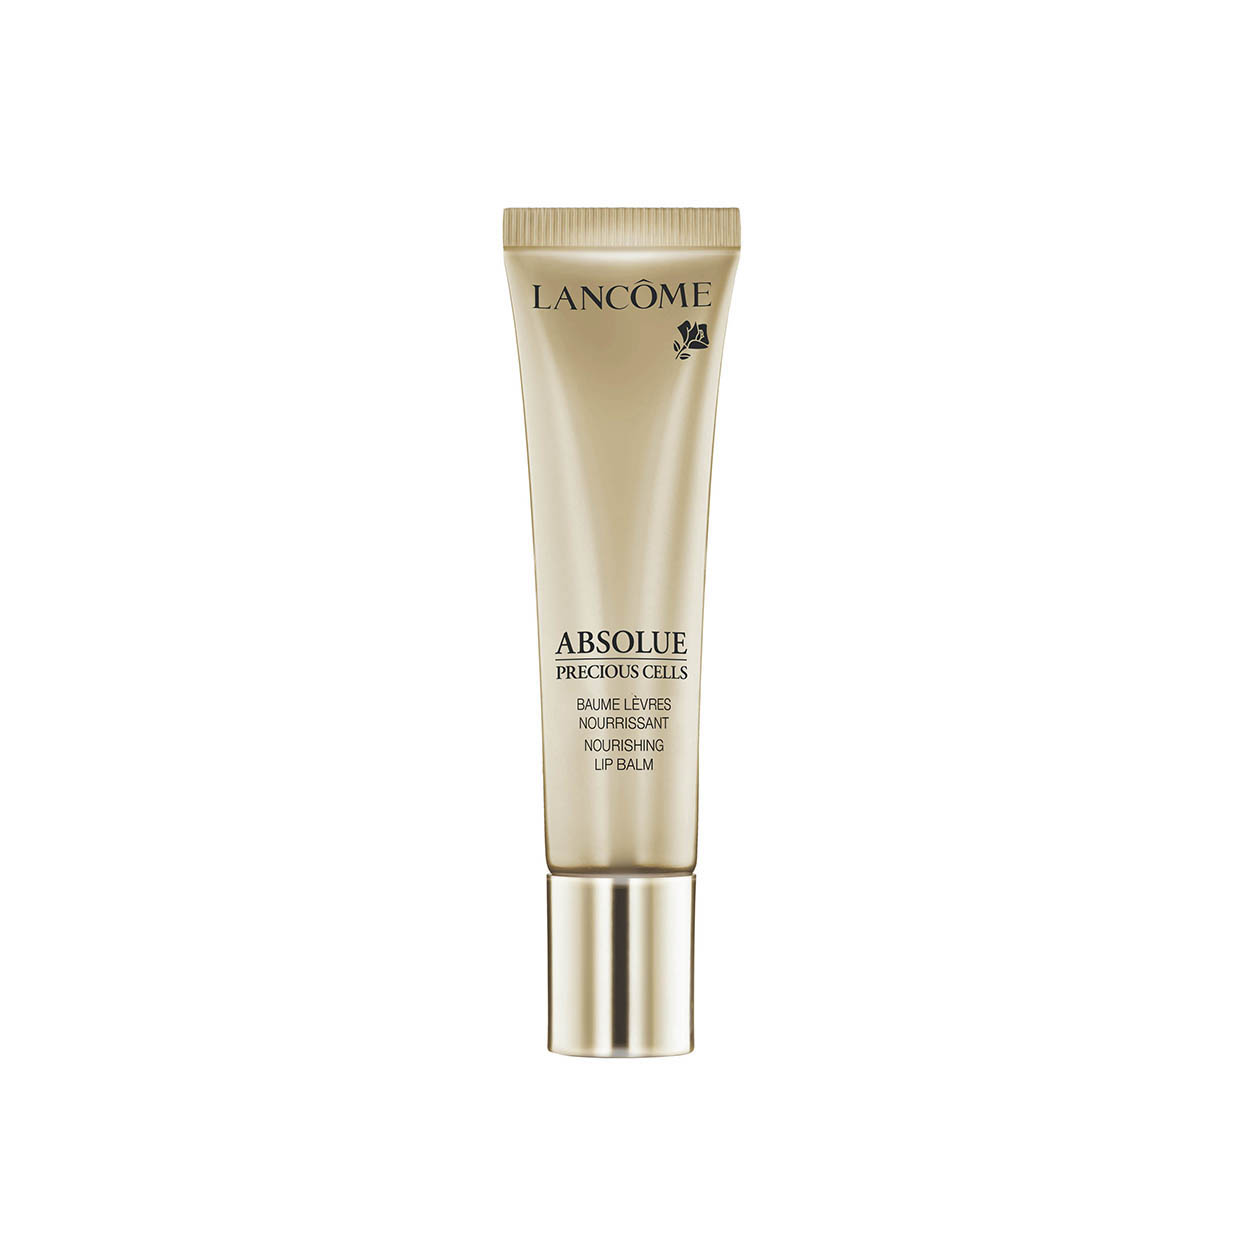 Image of Lancome absolue Cell lip balm 15ml